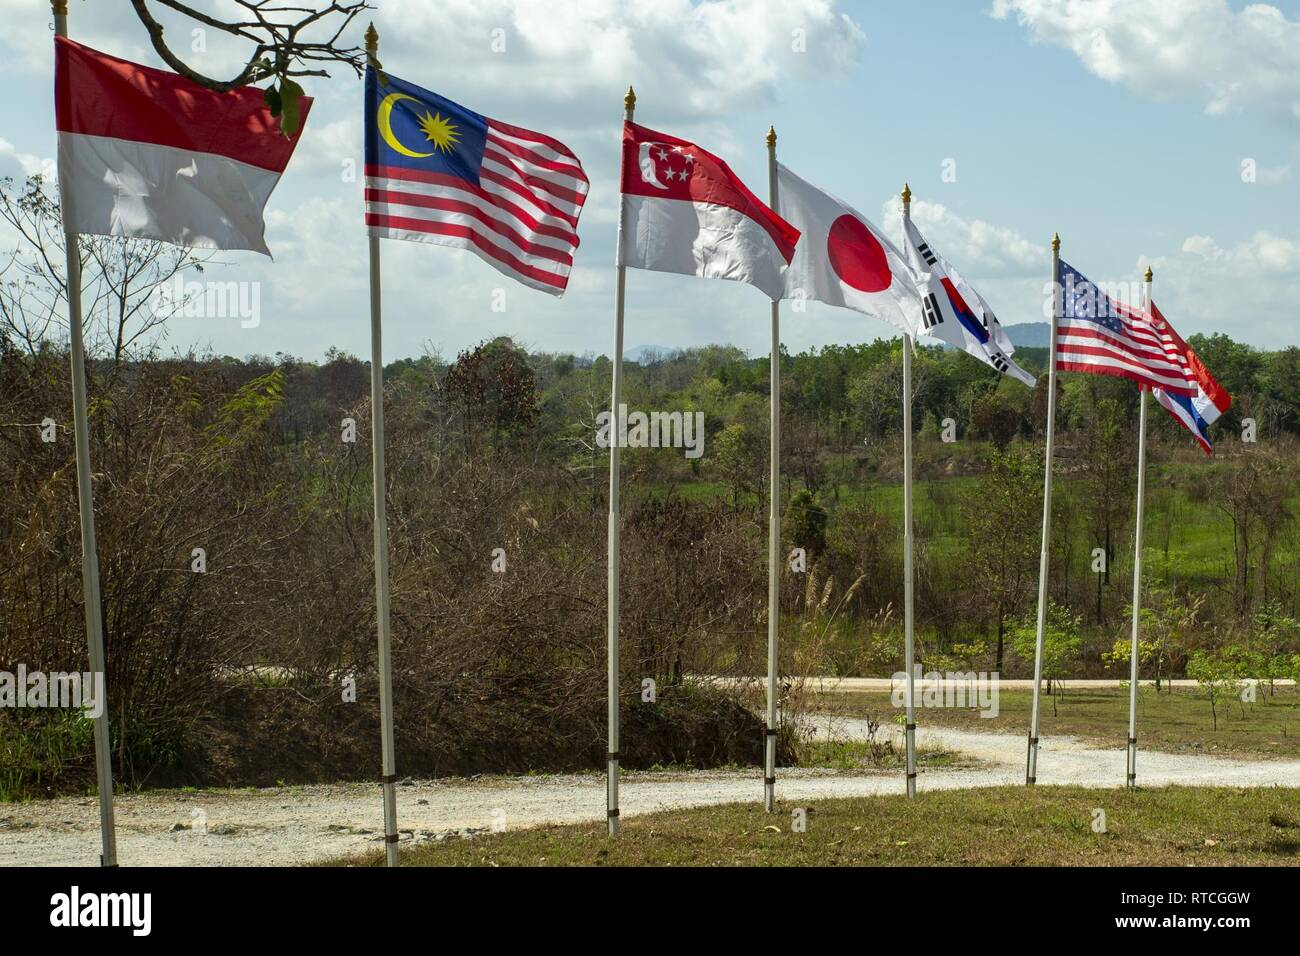 The flags of Exercise Cobra Gold 19's full participating